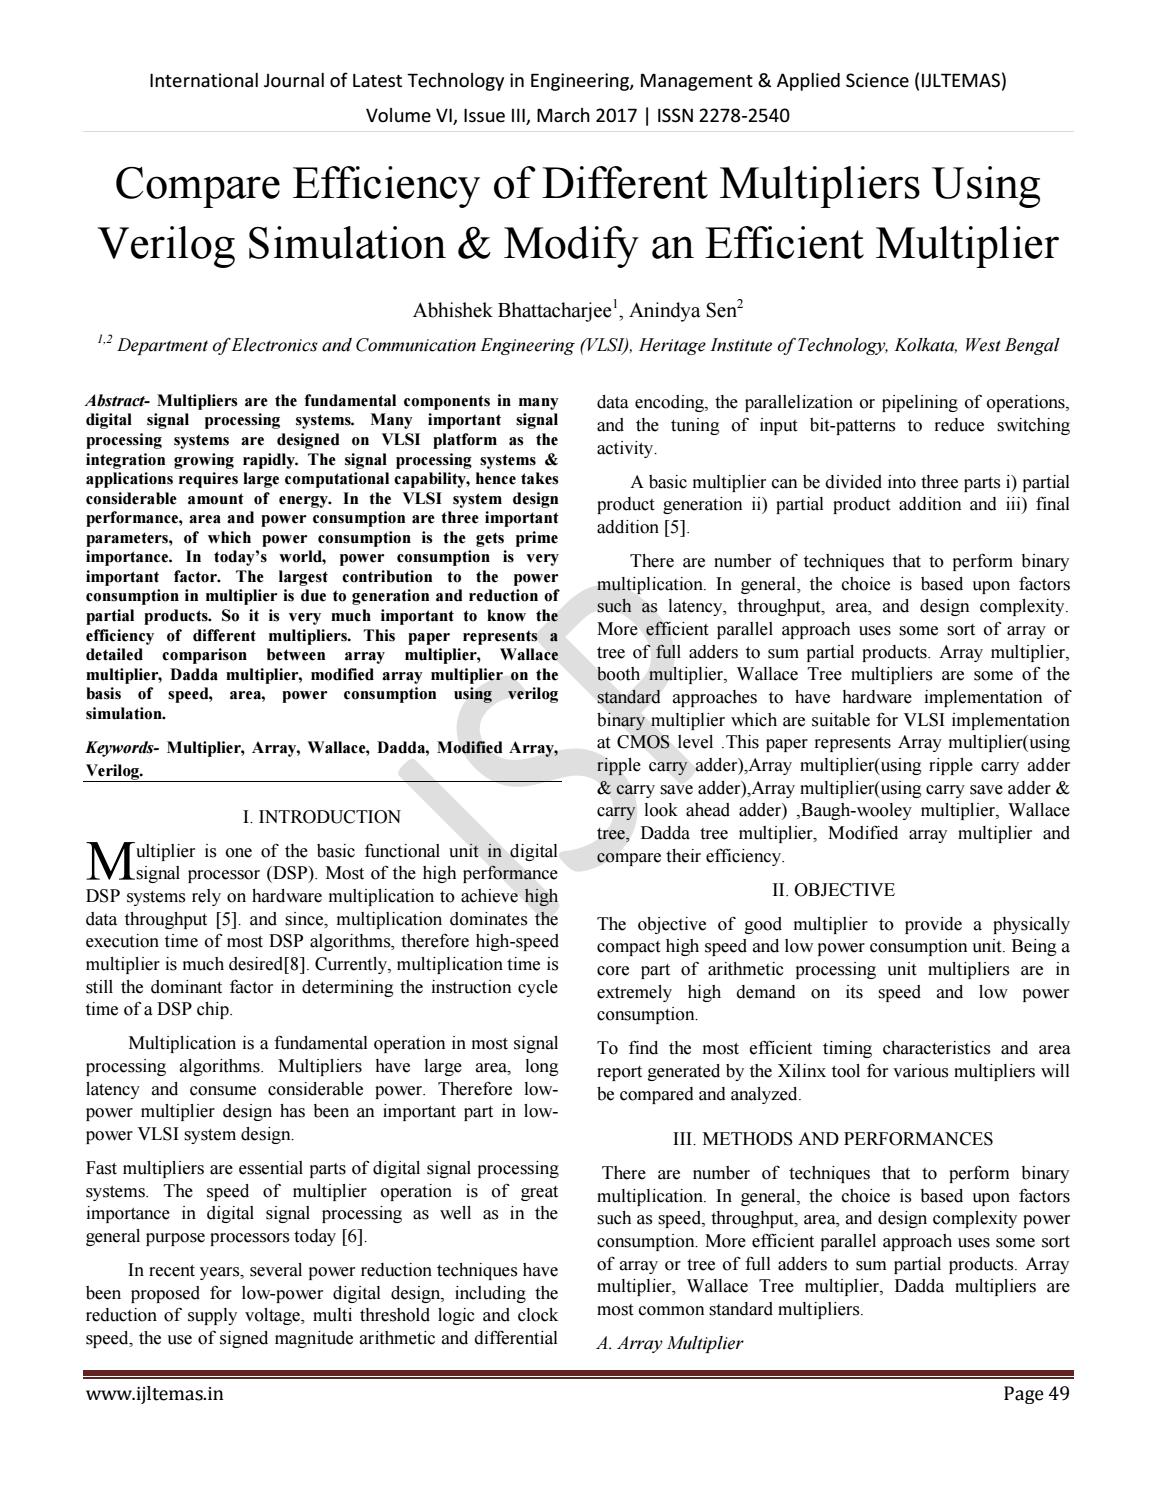 Compare Efficiency of Different Multipliers Using Verilog